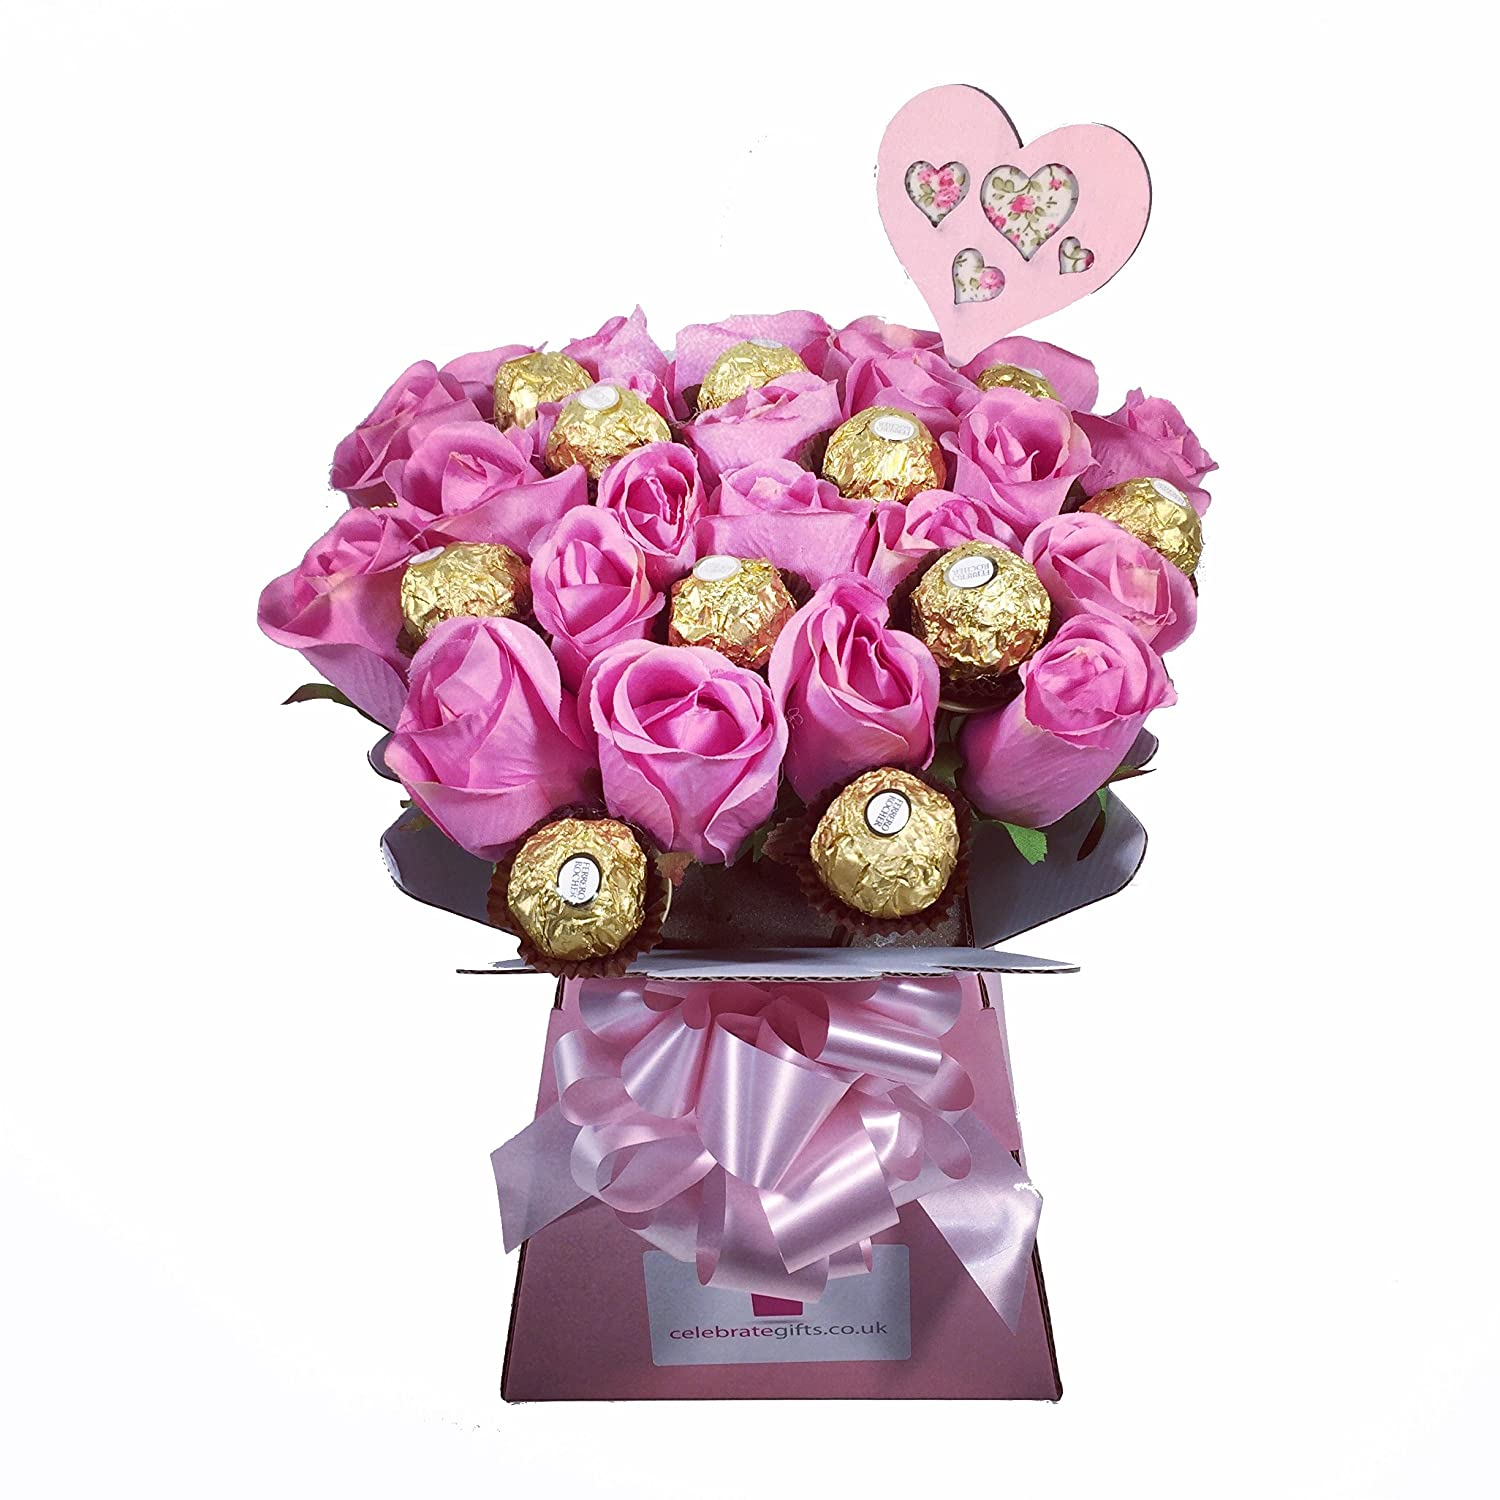 Luxury silk pink roses and ferrero rocher chocolate bouquet amazon luxury silk pink roses and ferrero rocher chocolate bouquet amazon grocery izmirmasajfo Gallery